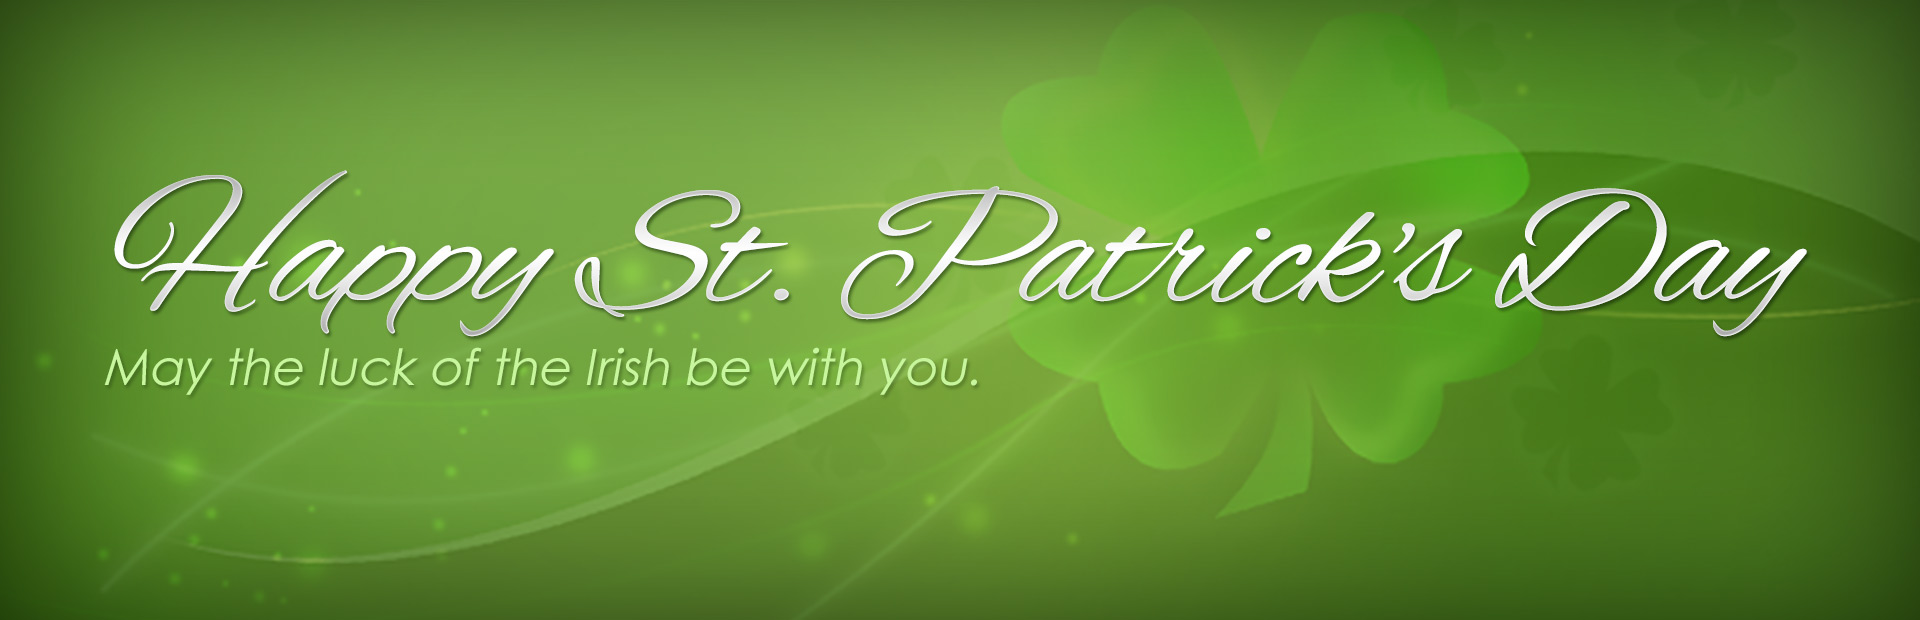 Happy St. Patrick's Day! May the luck of the Irish be with you.